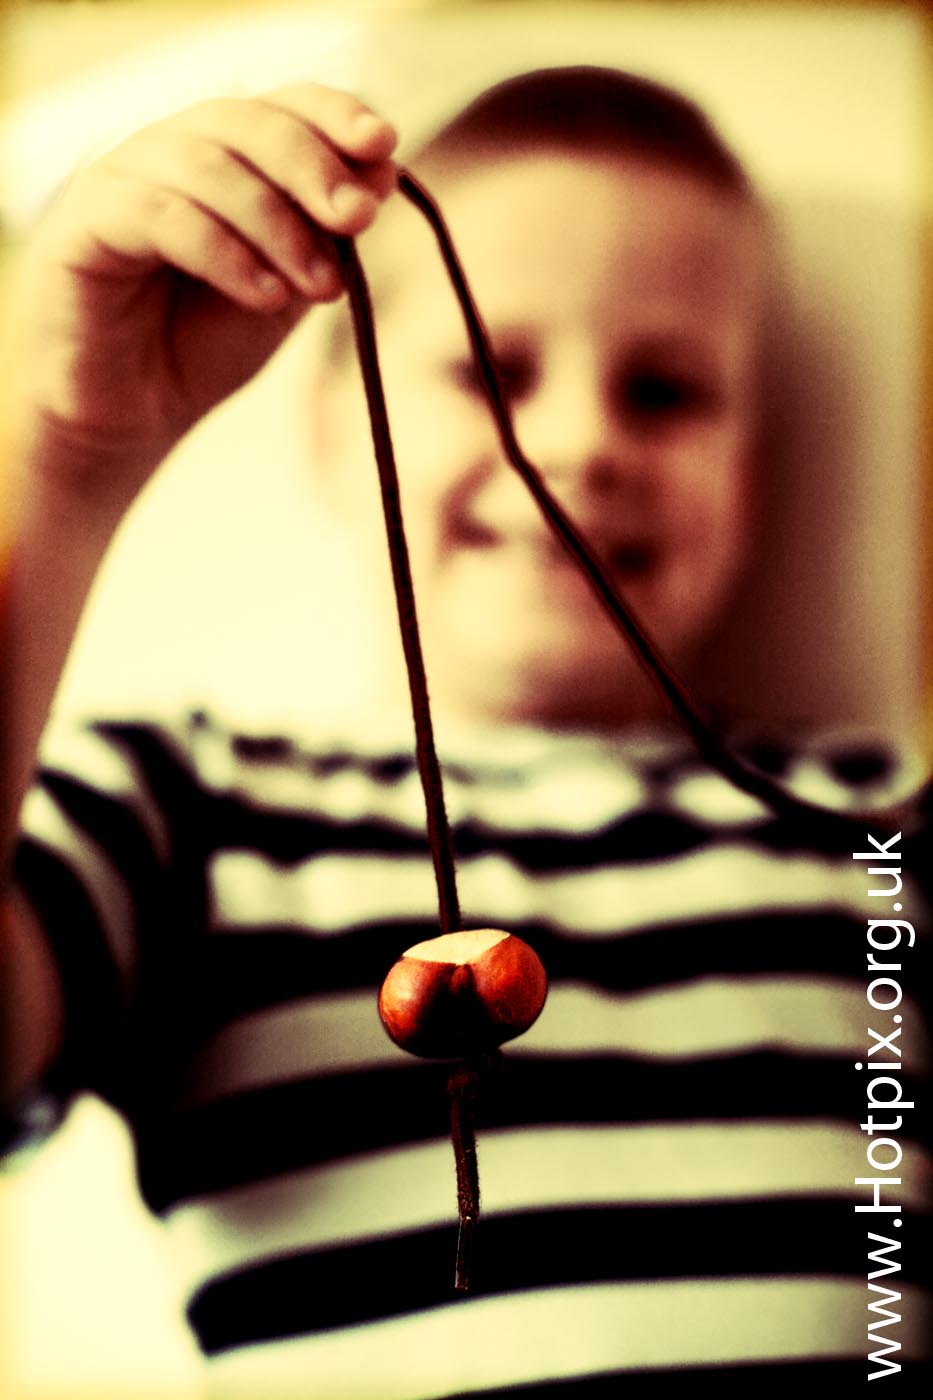 conker,conkers,bonkers,boy,holding,shoelace,shoe,lace,horse,chestnut,grappenhall,school,yard,matthew,schoolyard,narrow,dof,depth,field,Warrington,cheshire,England,sepia,selective,colour,color,uk,gb,great,britain,british,games,kid,kids,english,game,pastime,autumn,fall,tony,smith,tonysmith